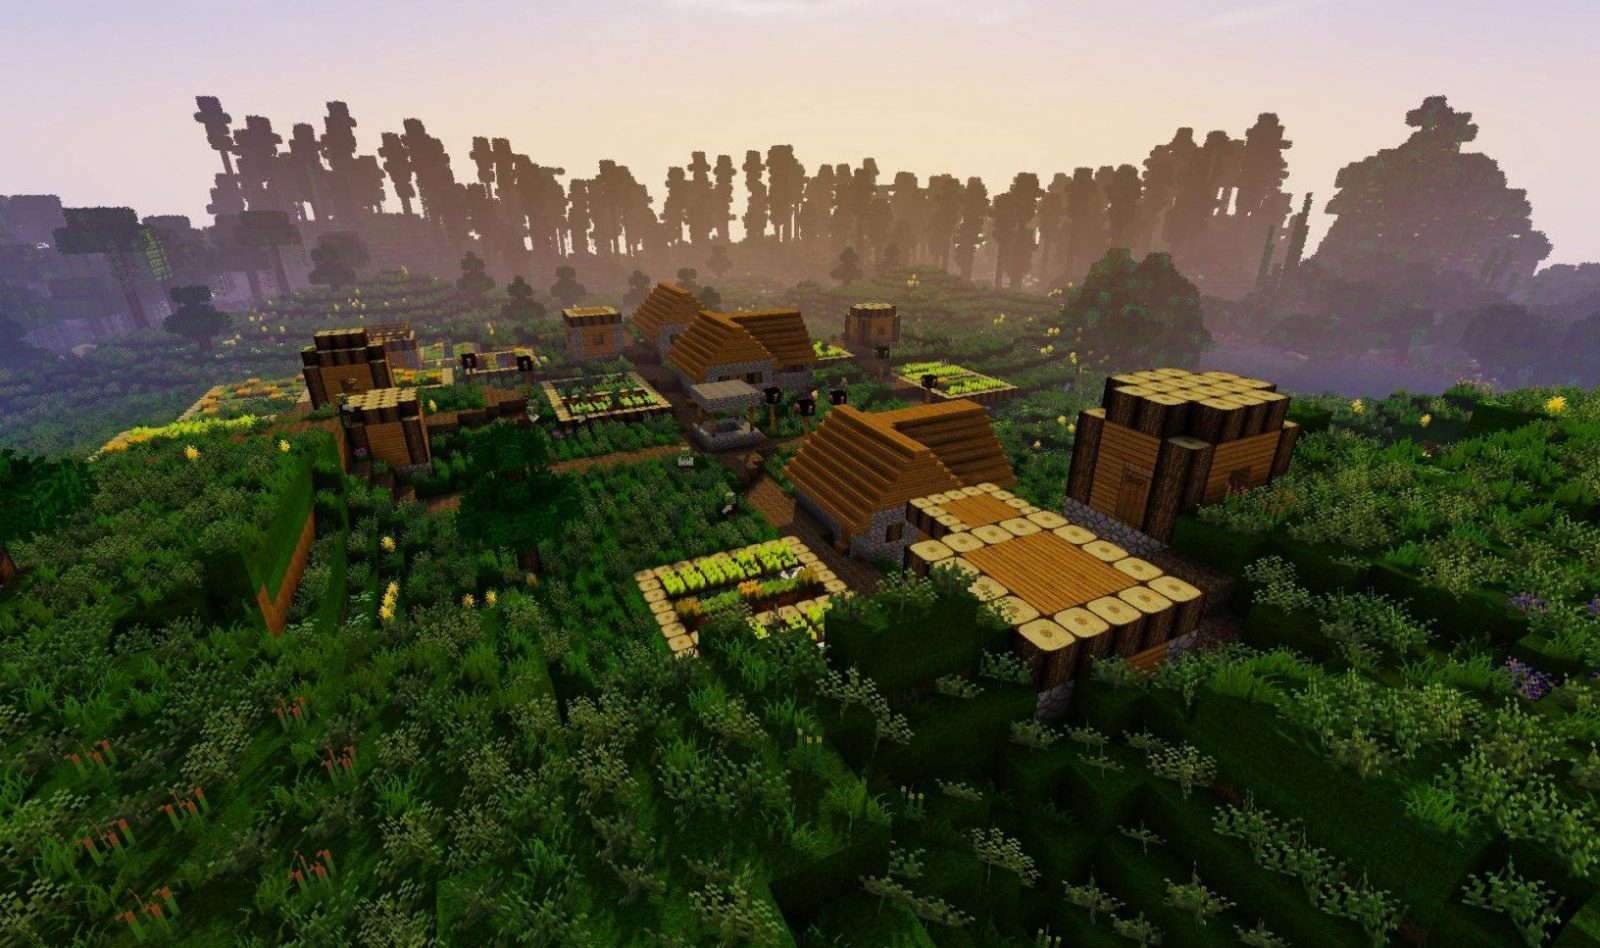 Life In The Woods Seeds  Seeds  Minecraft Java Edition von Life In The Woods Minecraft Bild